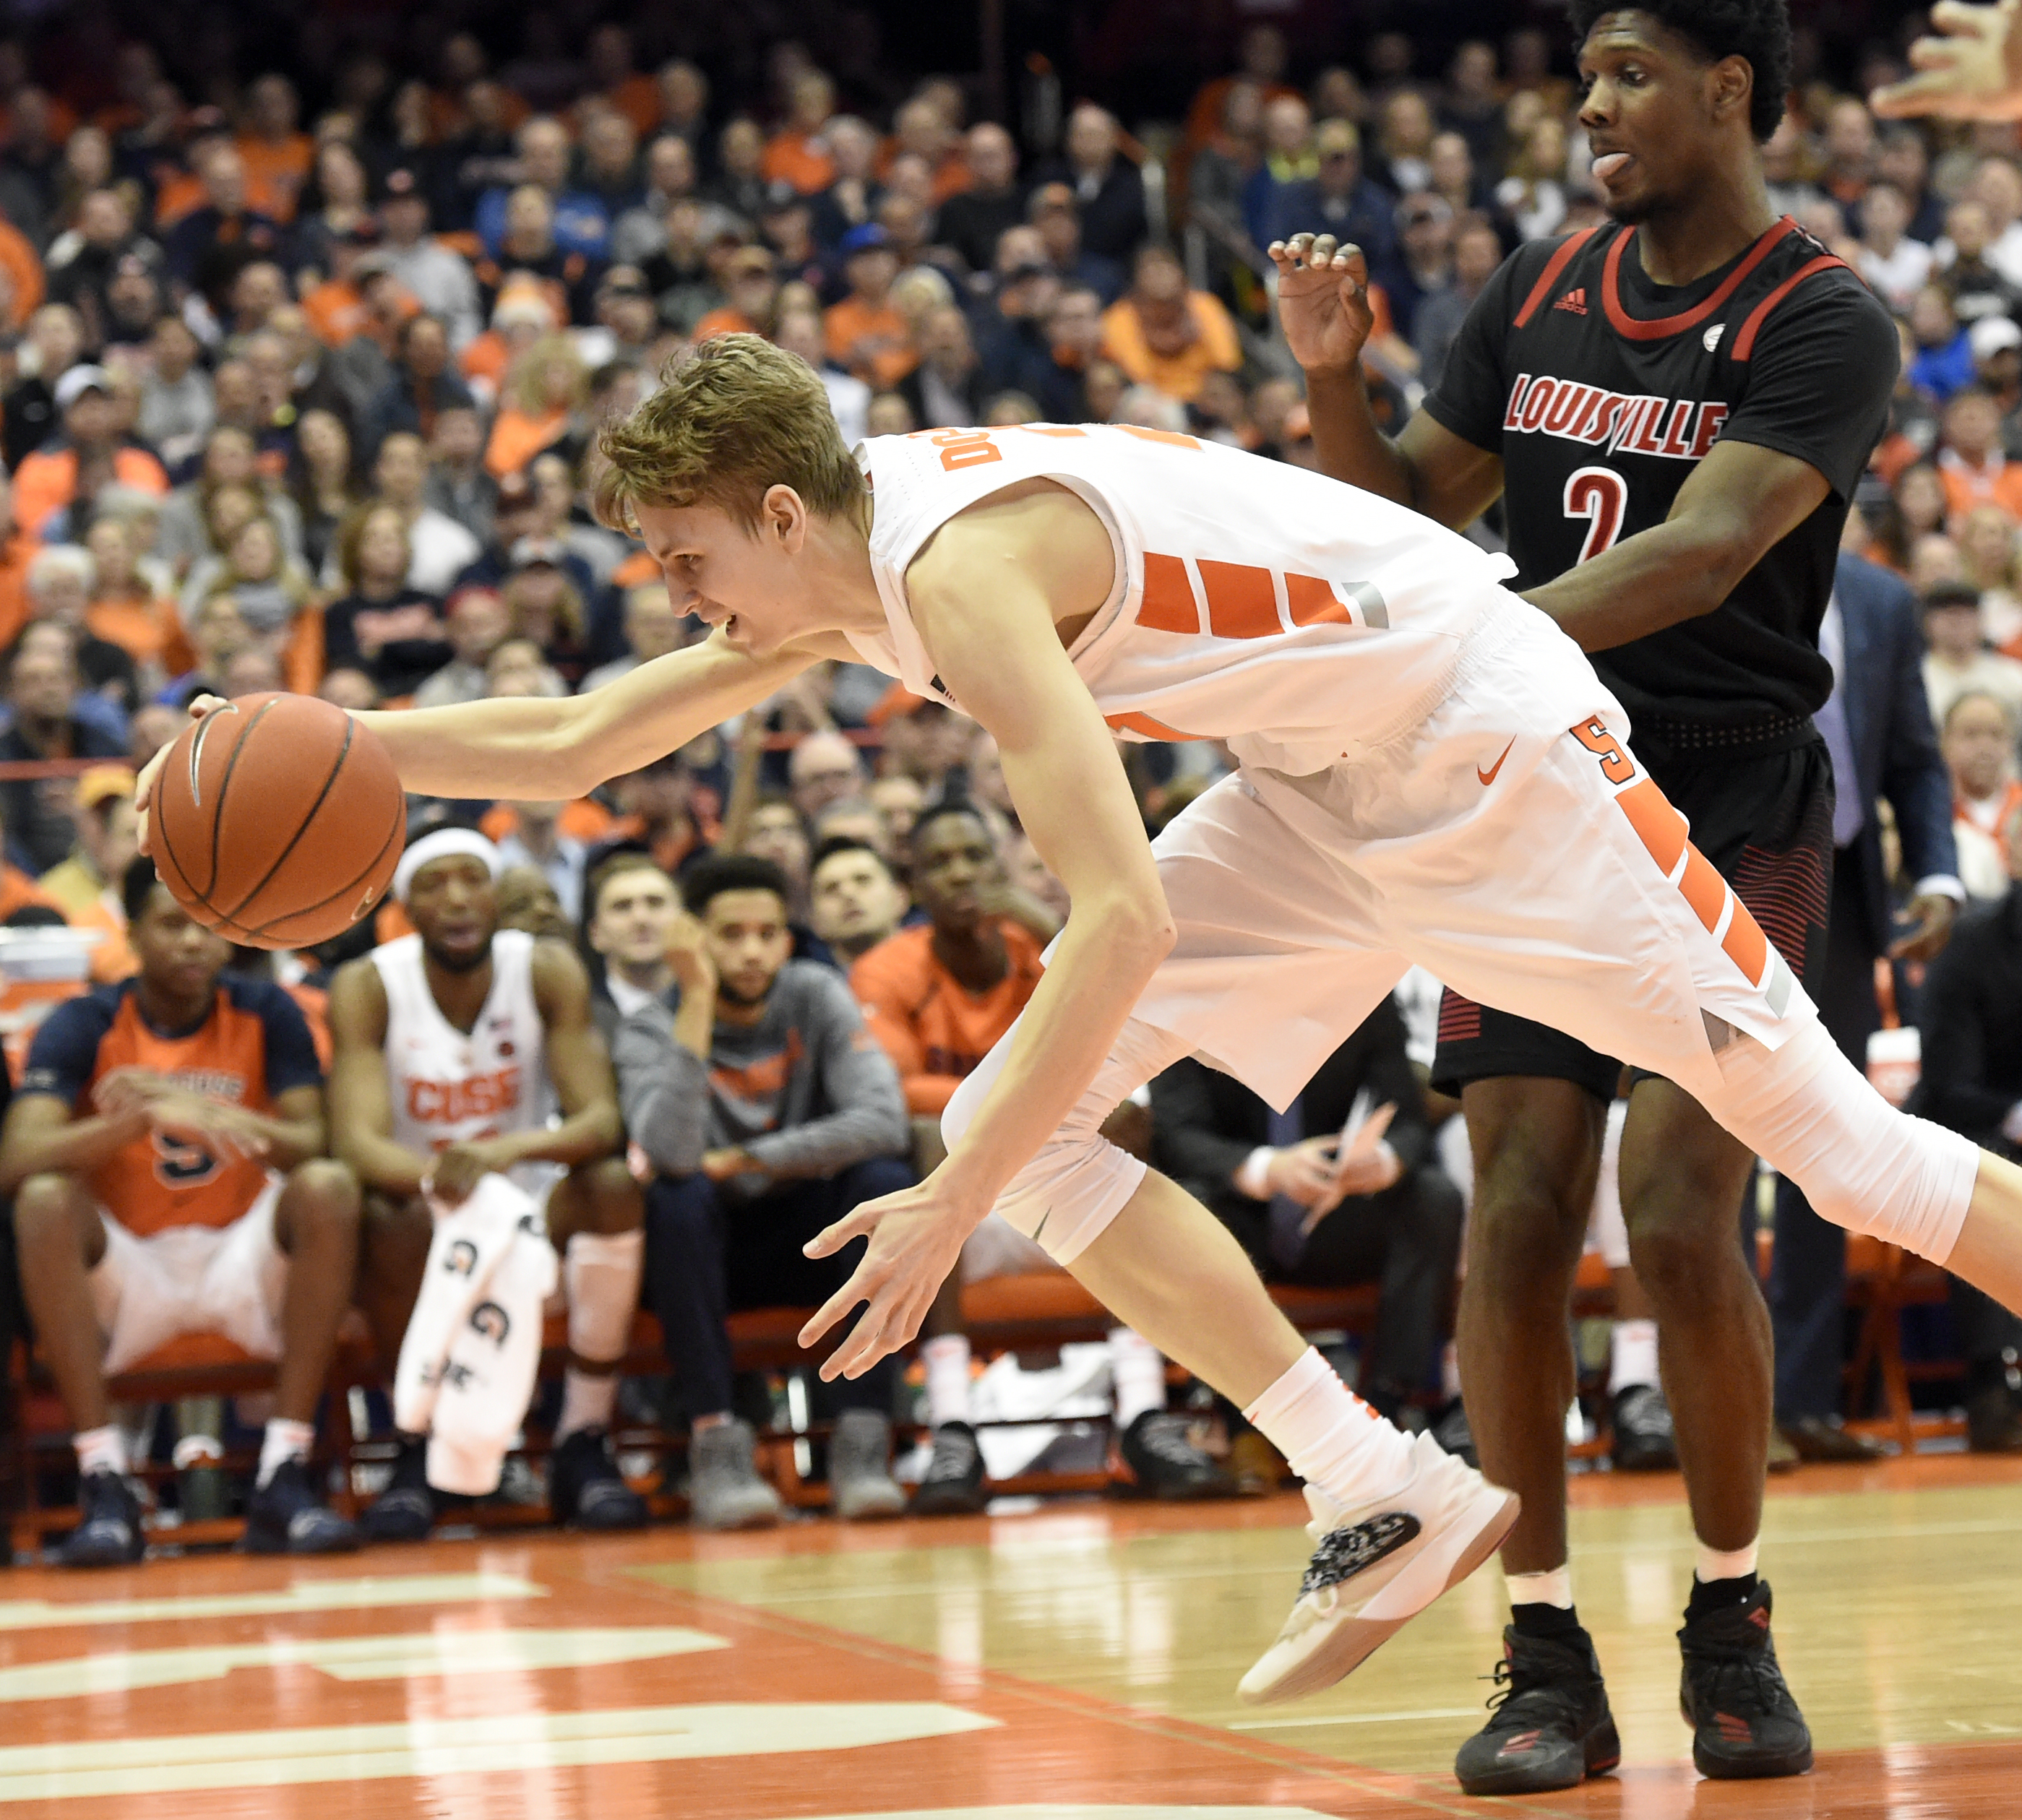 Marek Dolezaj S Hustle Mission I Just Go Into The Game To Get The Win Syracuse Com